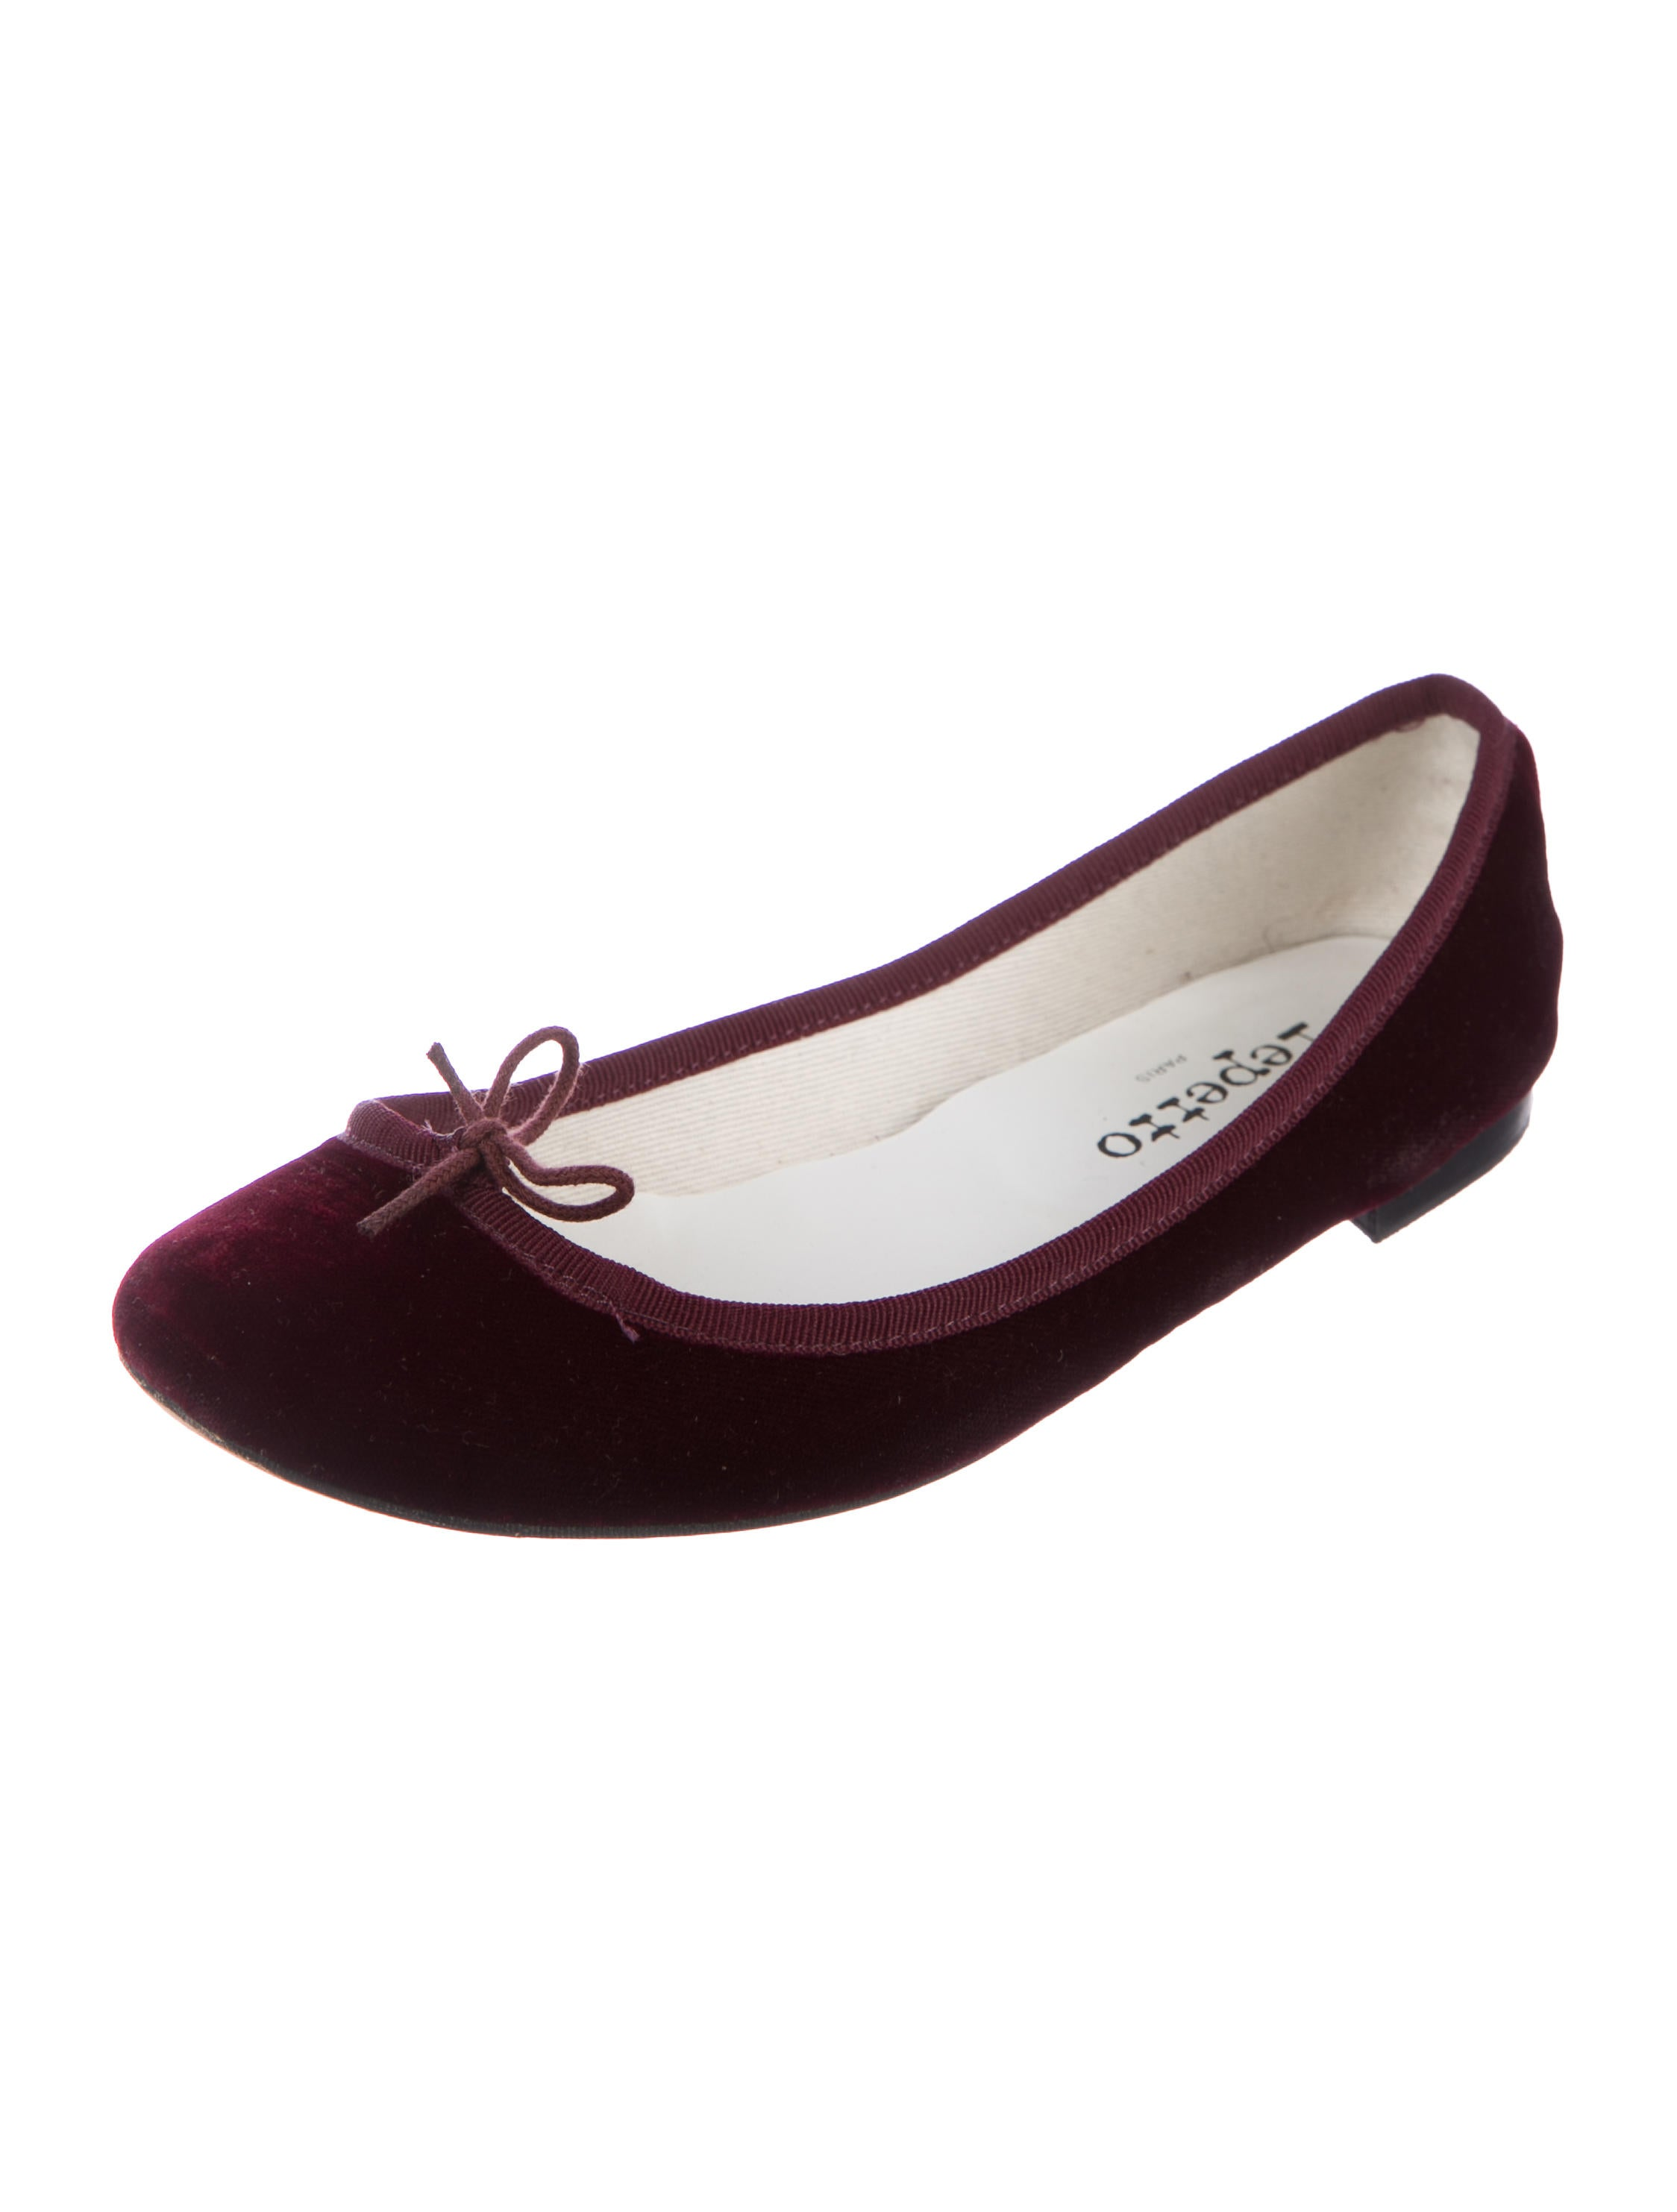 Repetto Velvet Round-Toe Loafers shopping online free shipping low shipping fee cheap price outlet store cheap online discount cost PgAFYcD